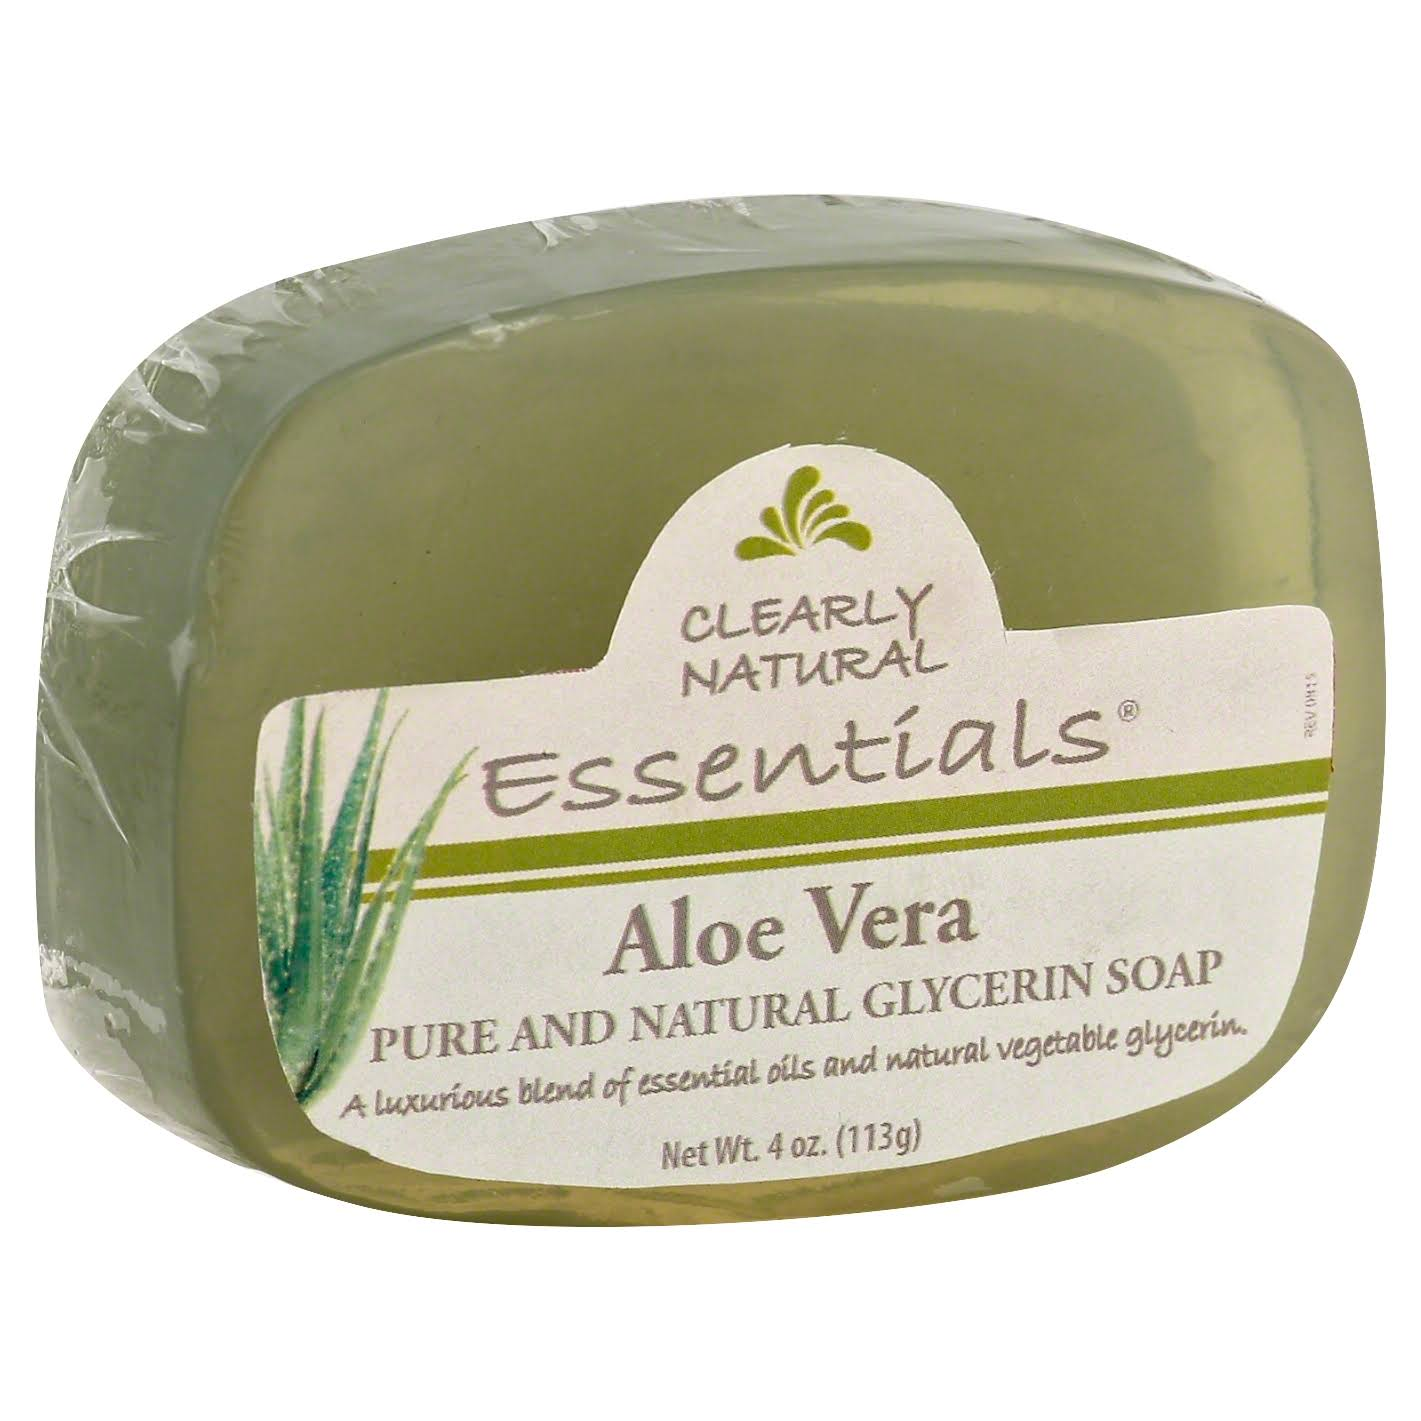 Clearly Natural Essentials Soap, Glycerin, Aloe Vera - 4 oz